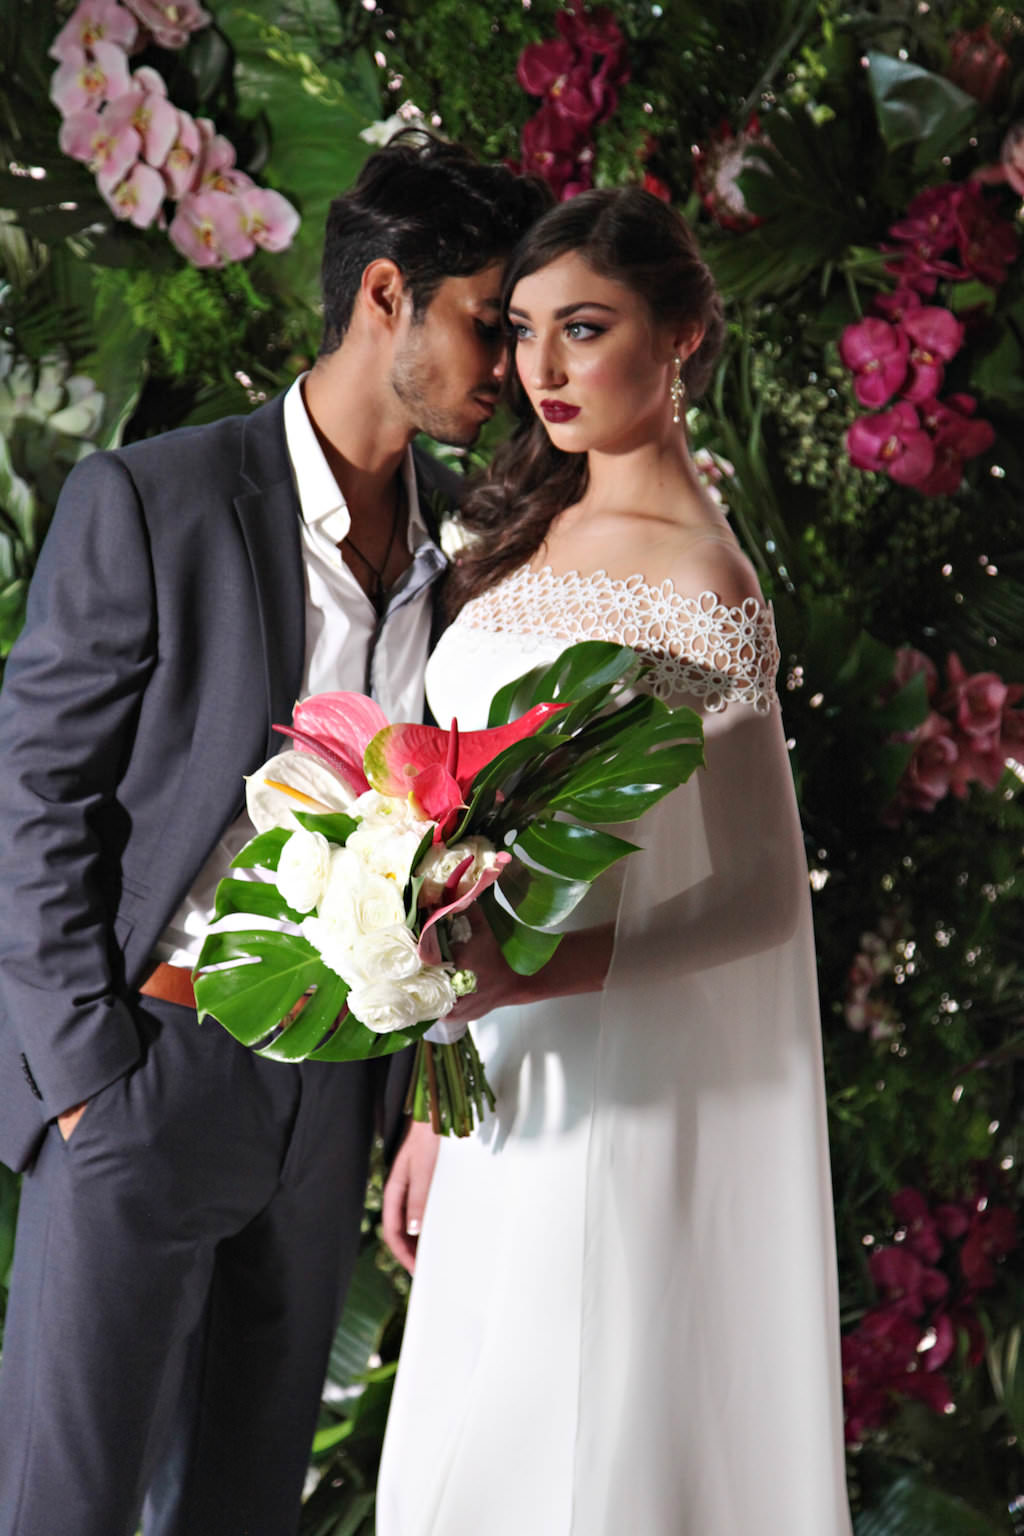 Tropical Wedding Ceremony Portrait, Bride in Lace Off The Shoulder Caped Ines Di Santo Wedding Dress, with Pink and White Lily and Monsterra Palm Frond Bouquet, with Orchid and Fern Greenery Backdrop   Latin Inspired Cuban Havana Nights Wedding